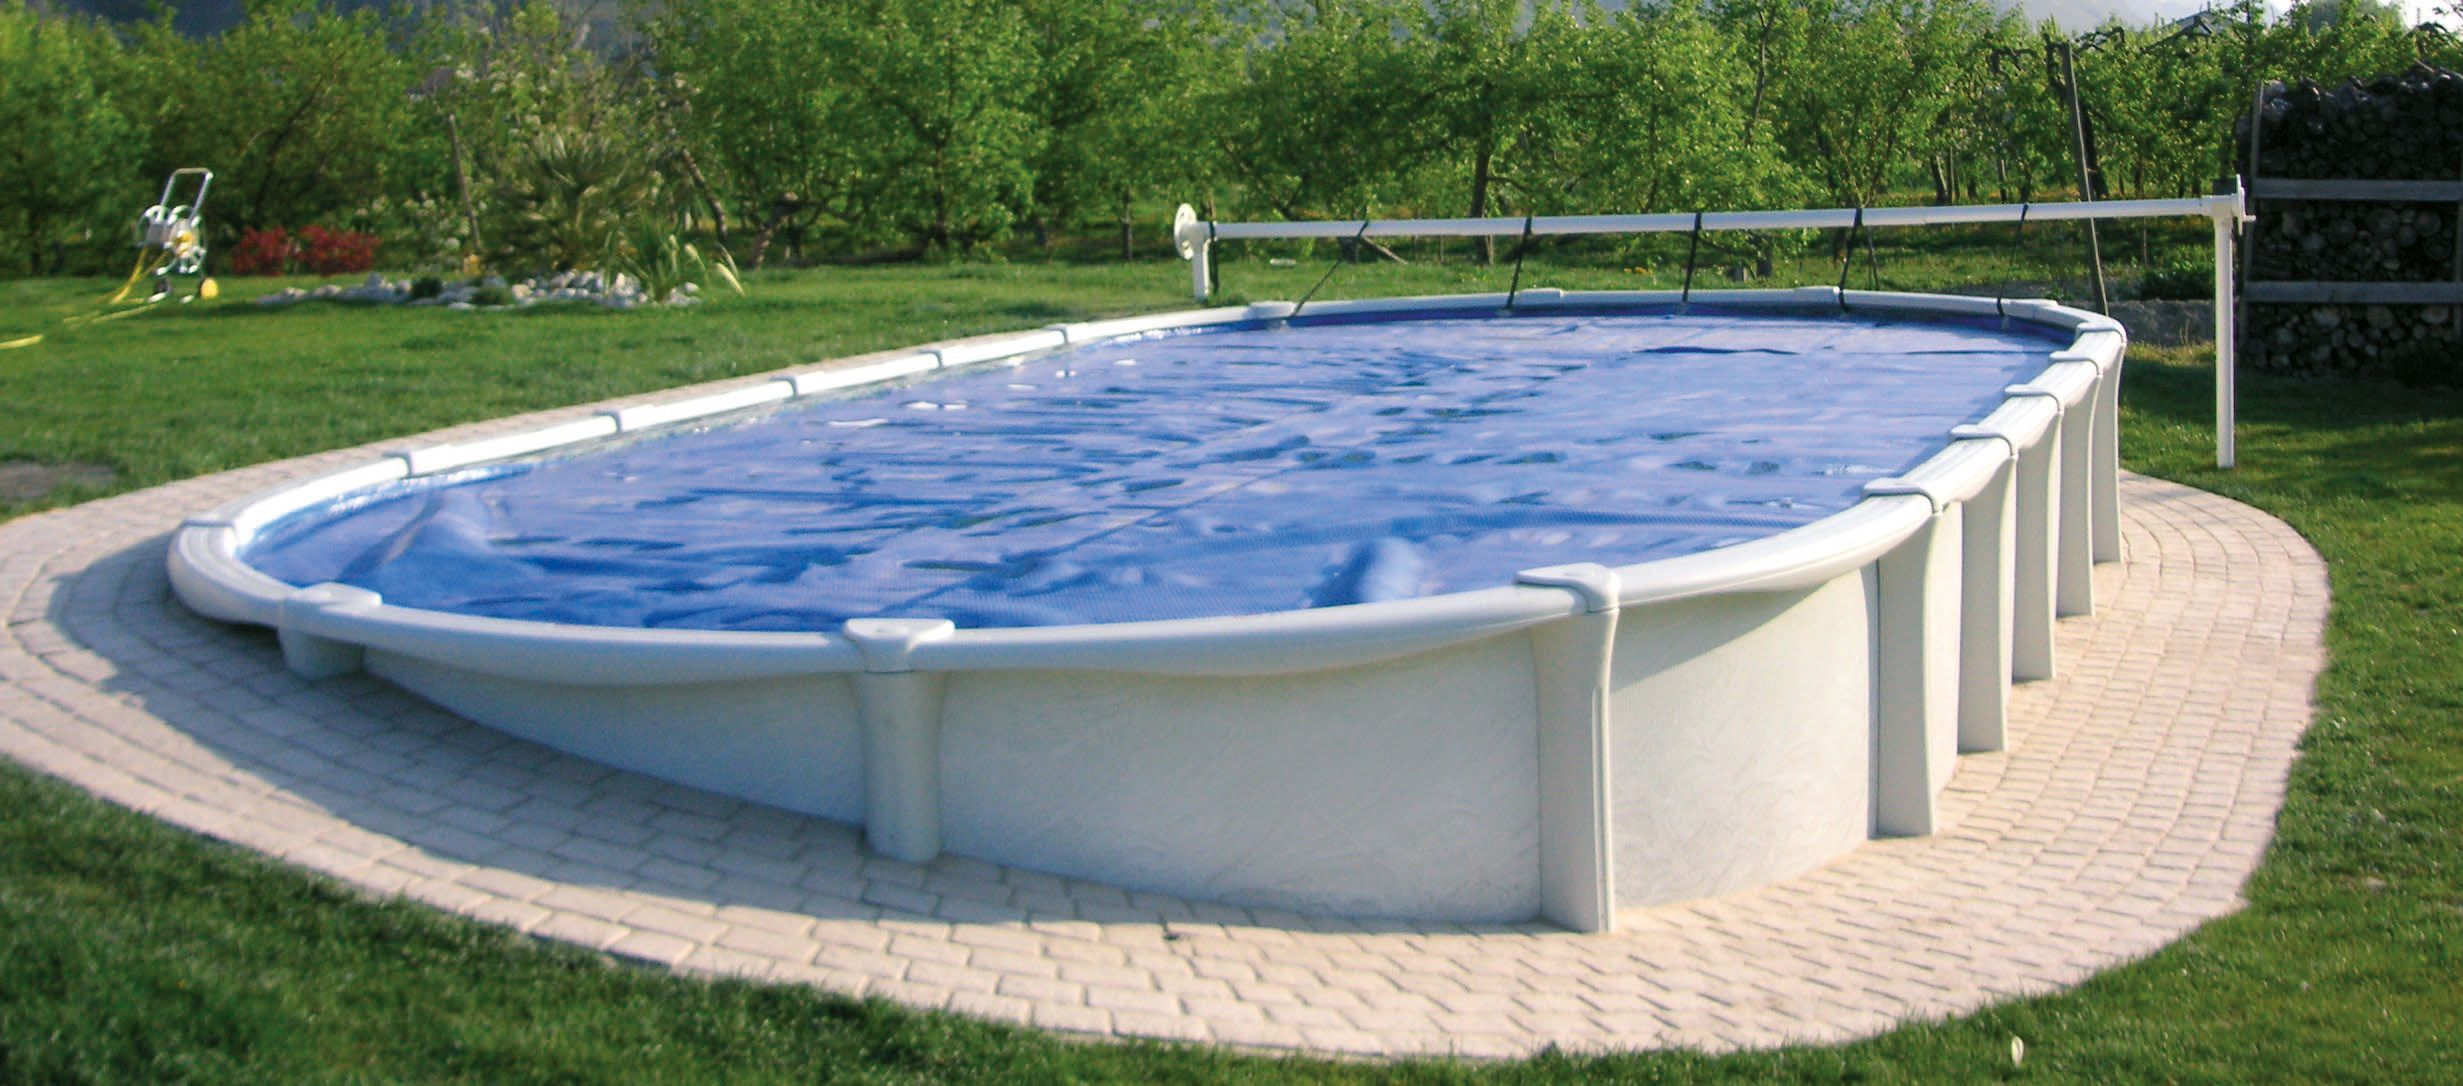 Piscine hors sol piscine for Piscine hexagonale hors sol